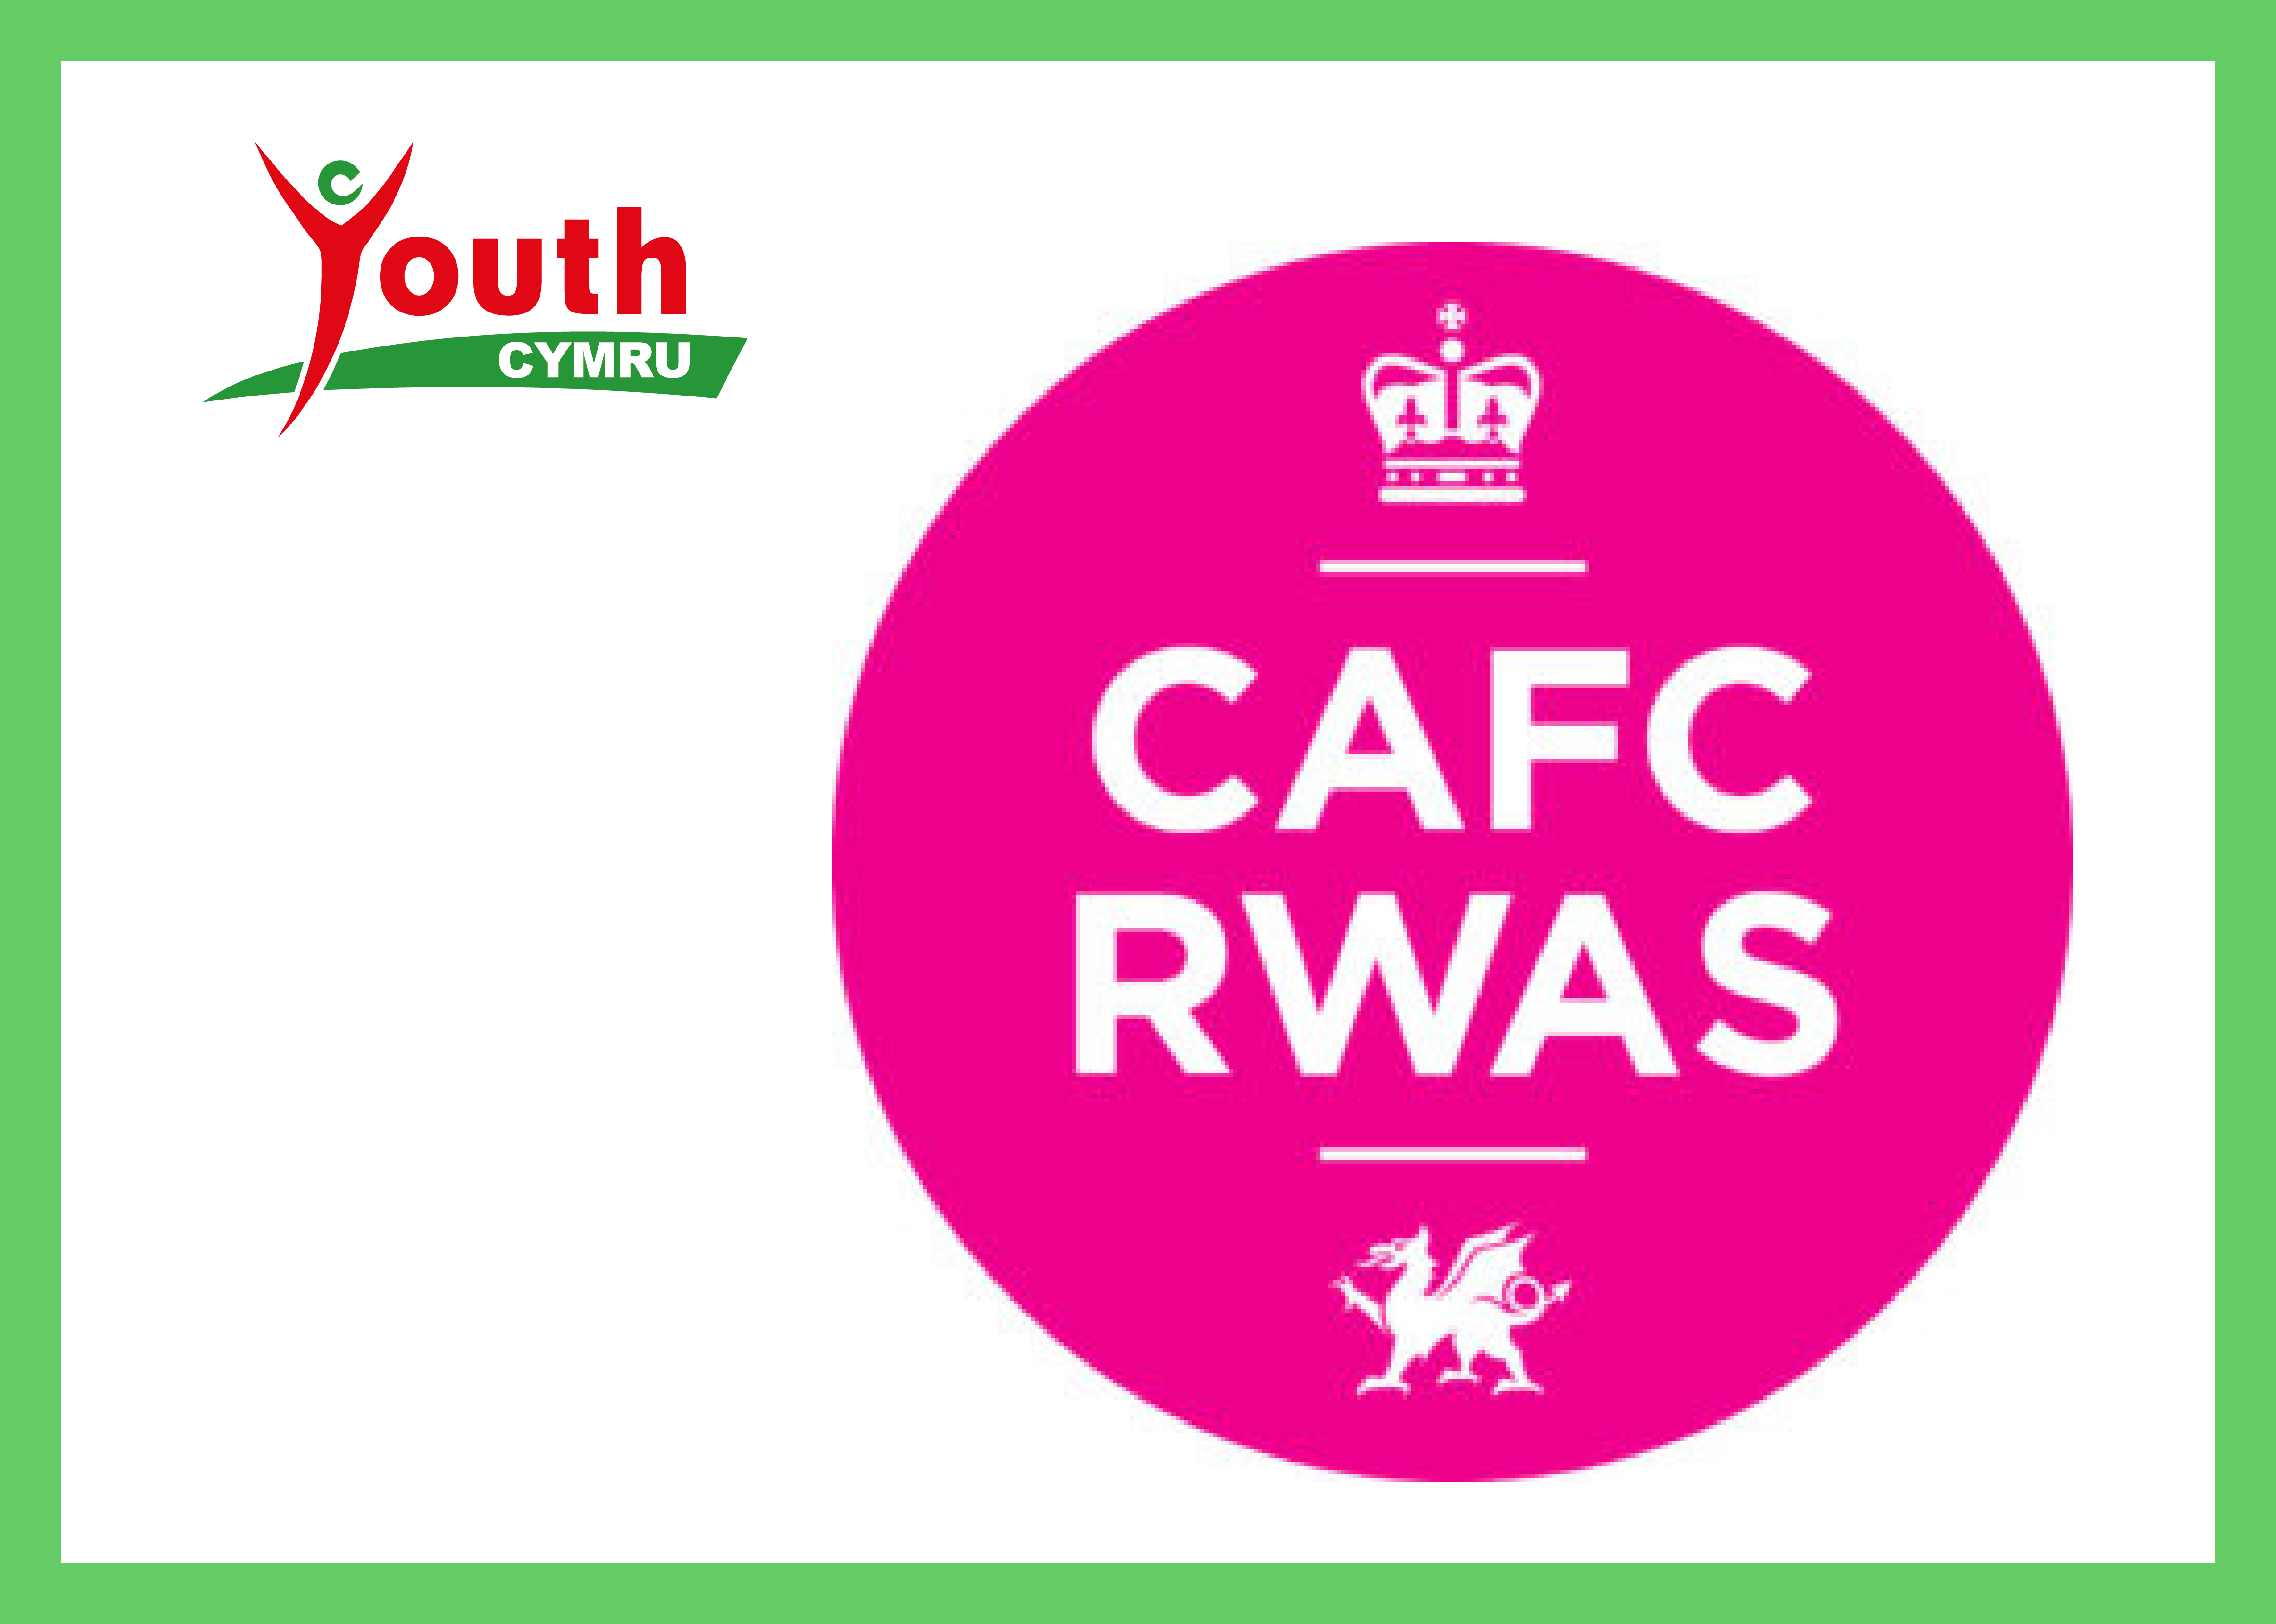 Youth Cymru at the Royal Welsh Show 2018